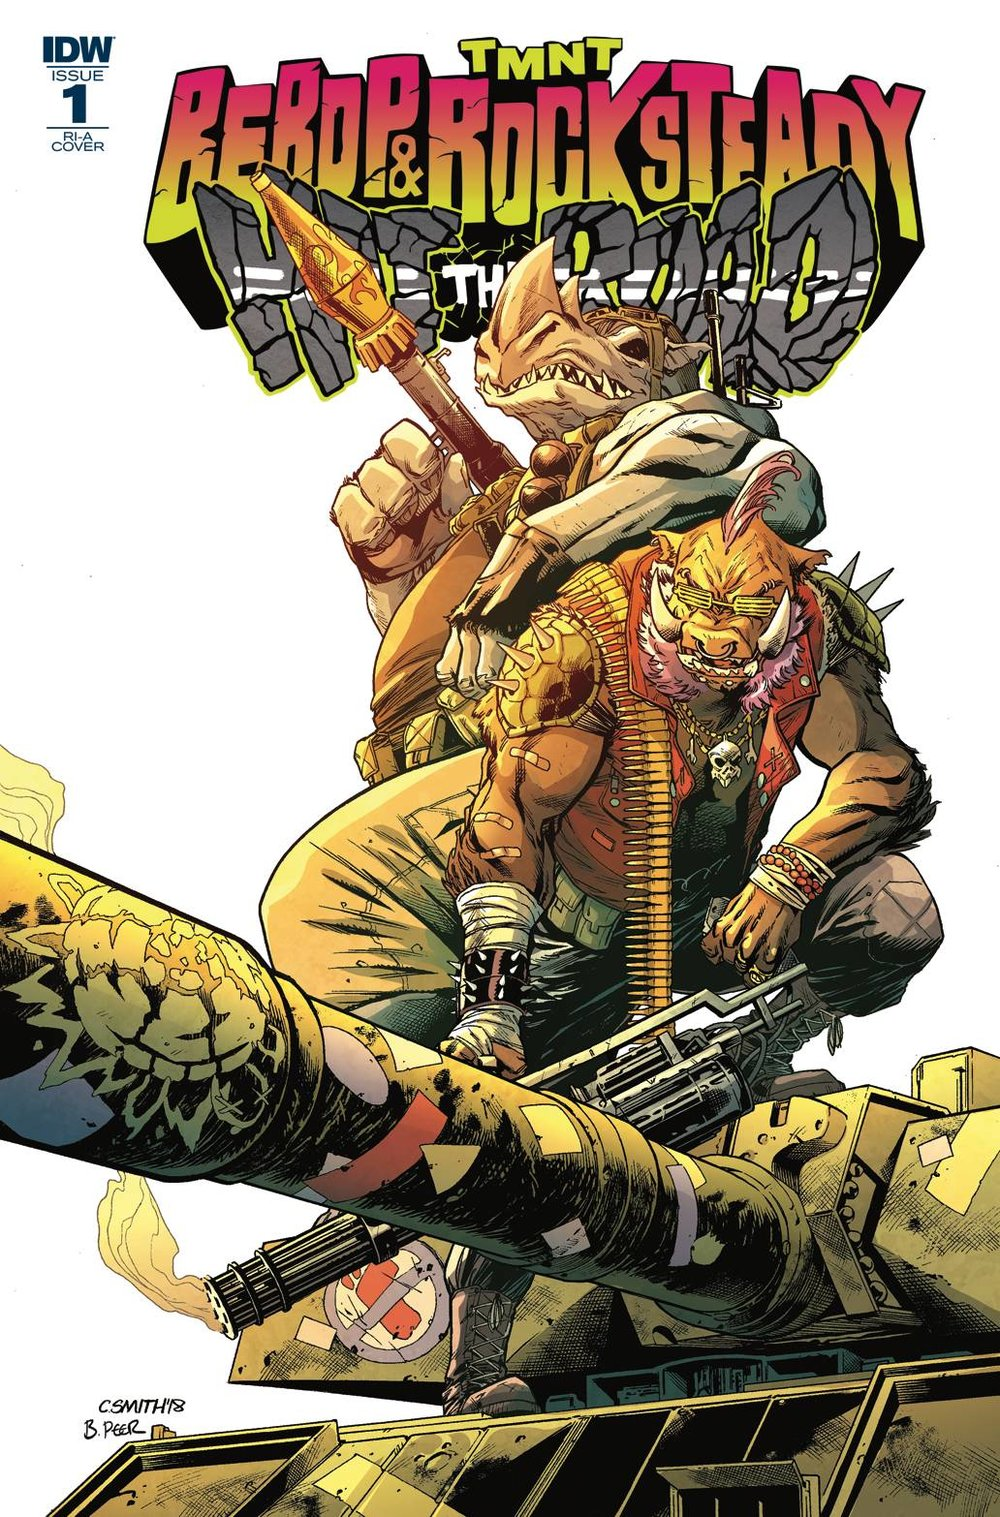 TMNT BEBOP ROCKSTEADY HIT THE ROAD 1 of 5 10 COPY INCV CVR SMITH.jpg